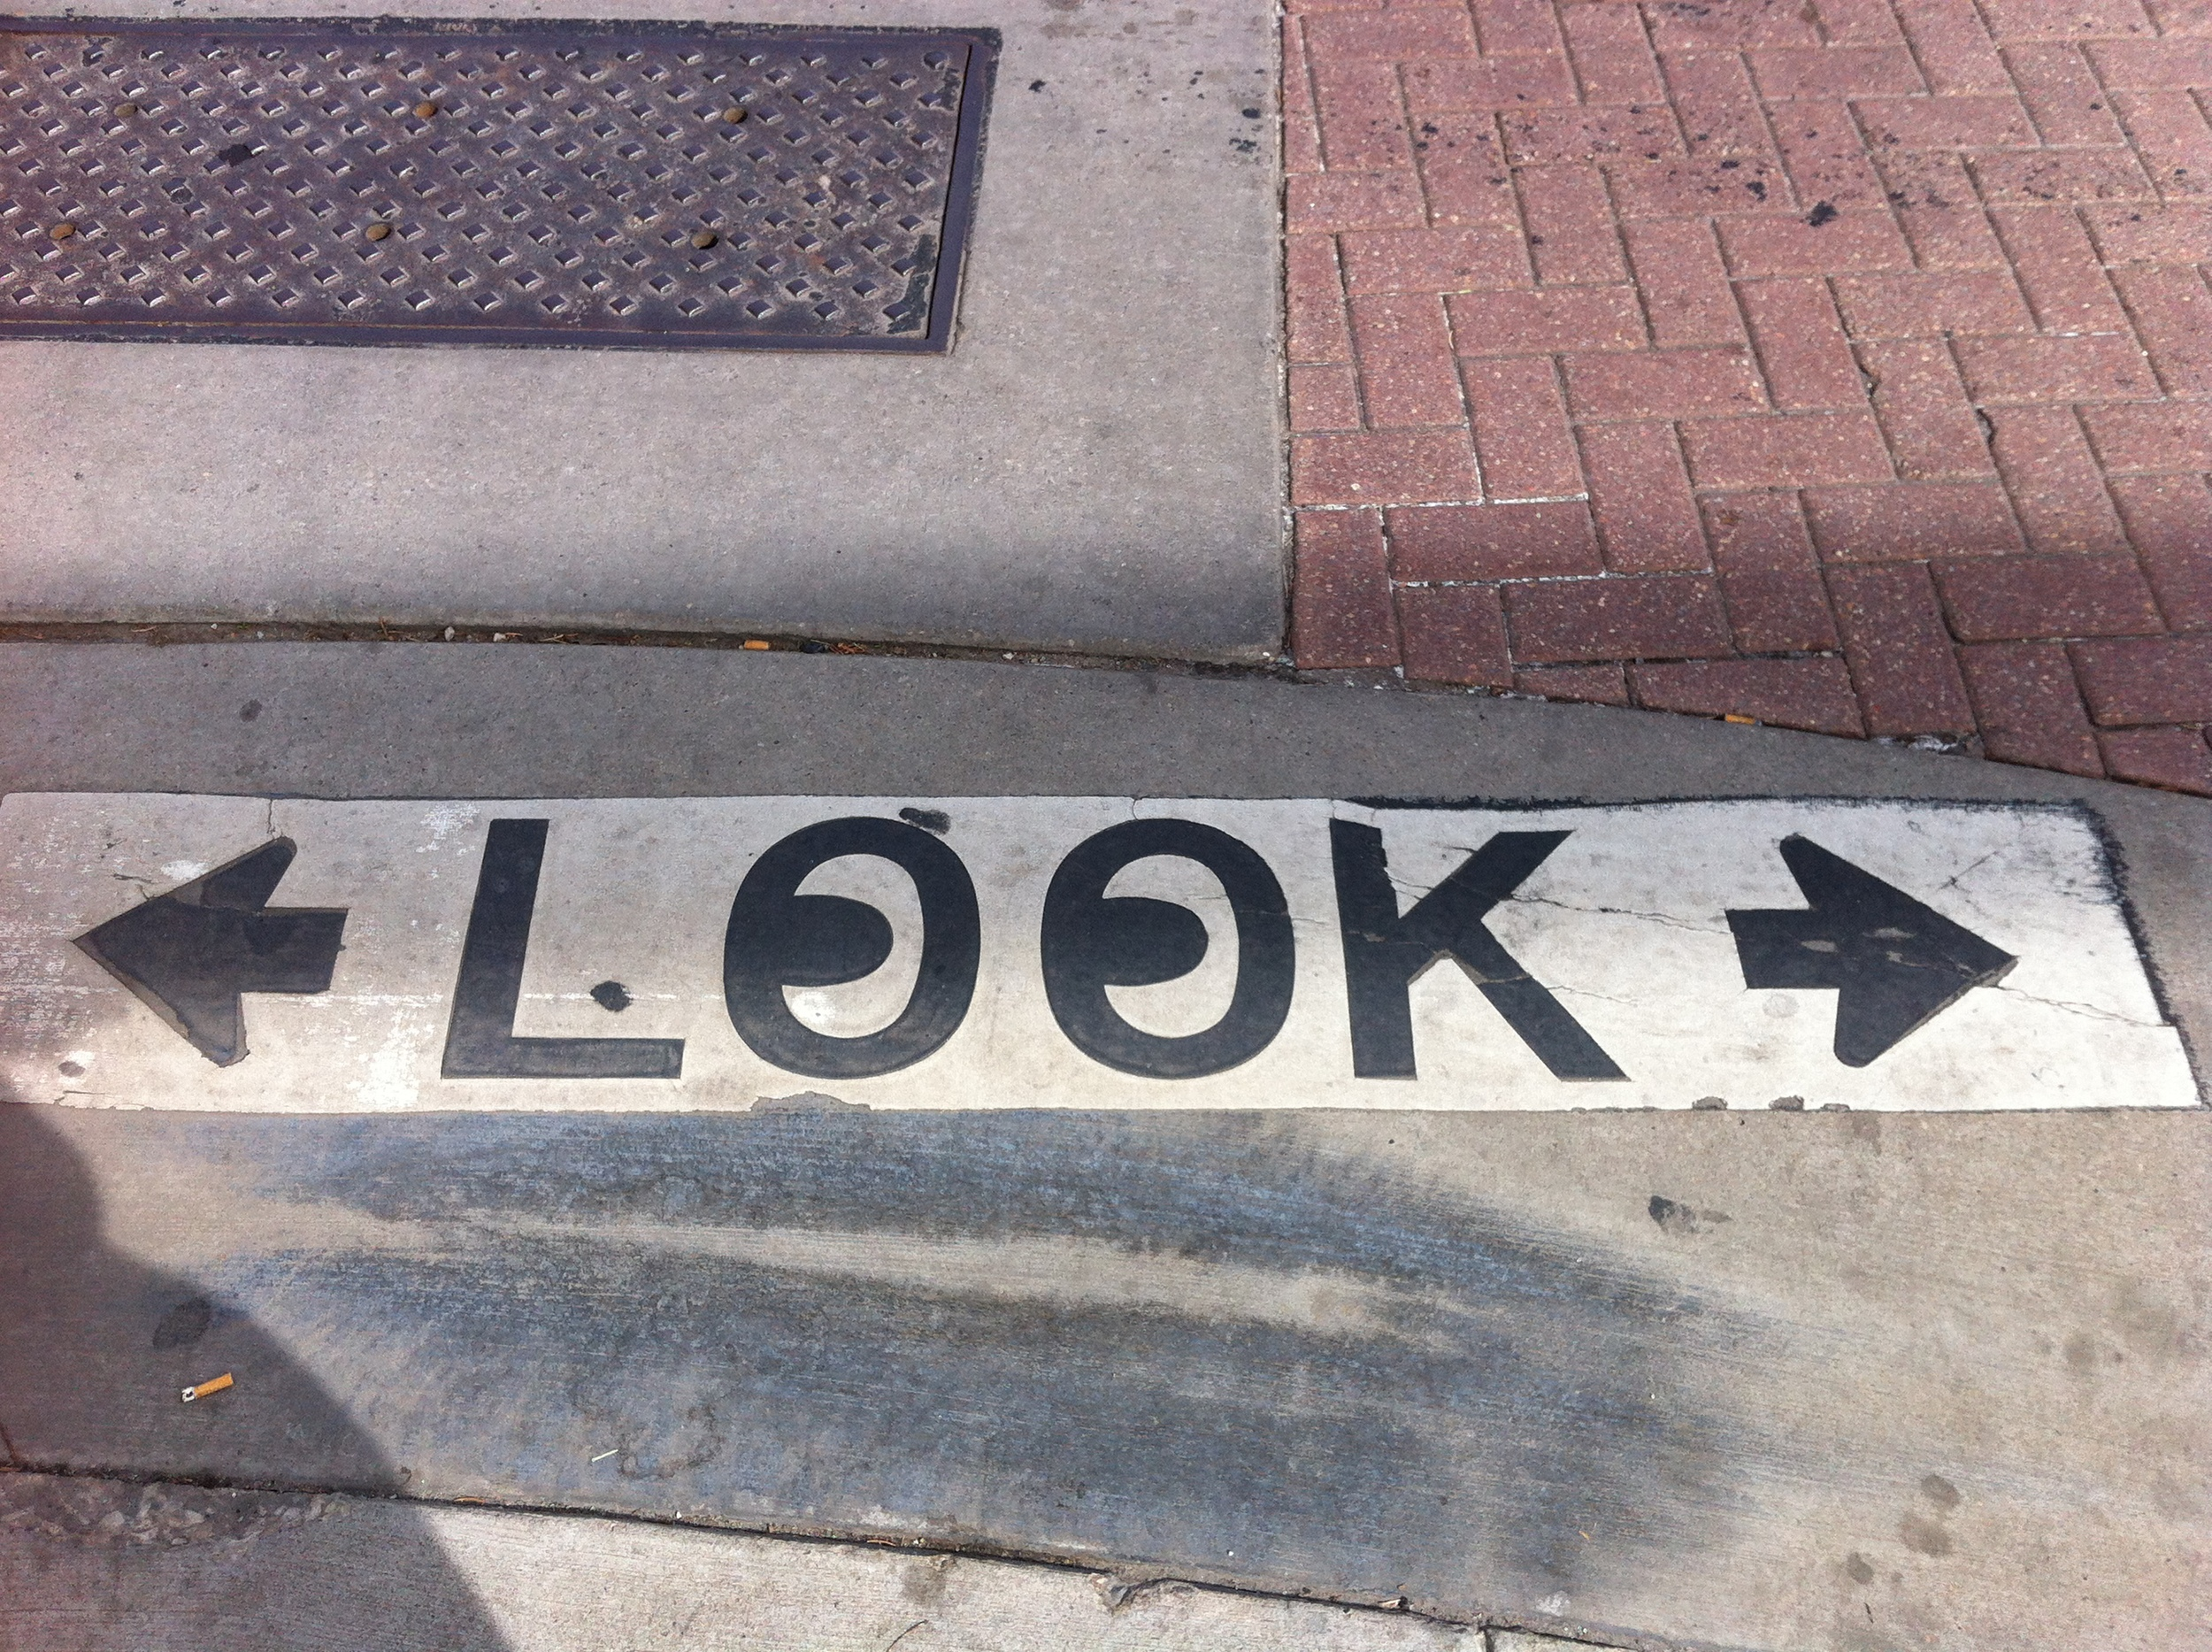 In Salt Lake City, many of the cross walks have a reminder to look both ways.